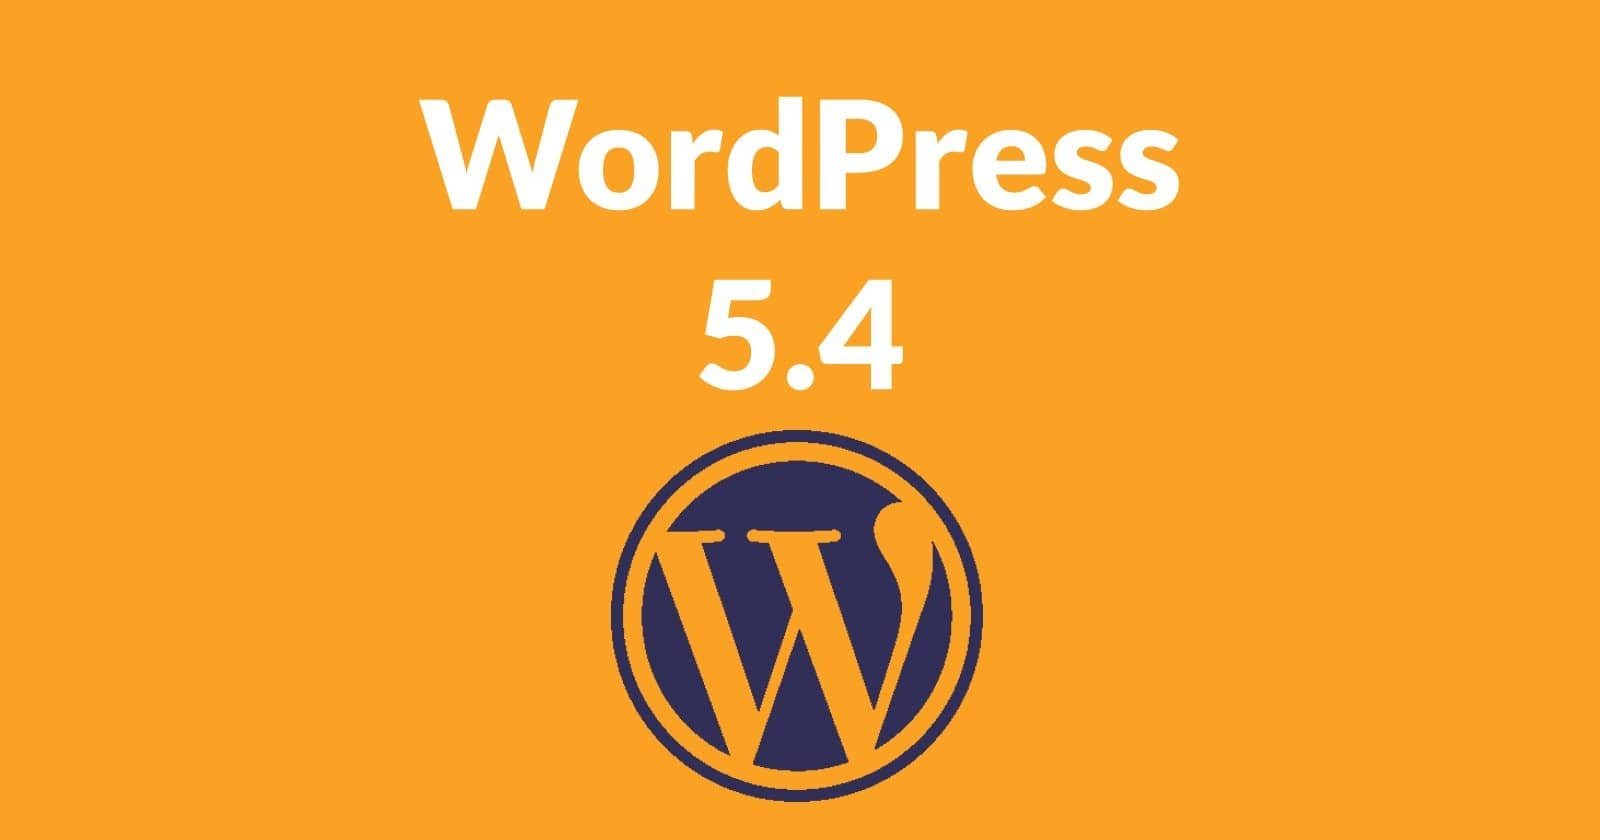 Titelbild des WordPress Updates 5.4